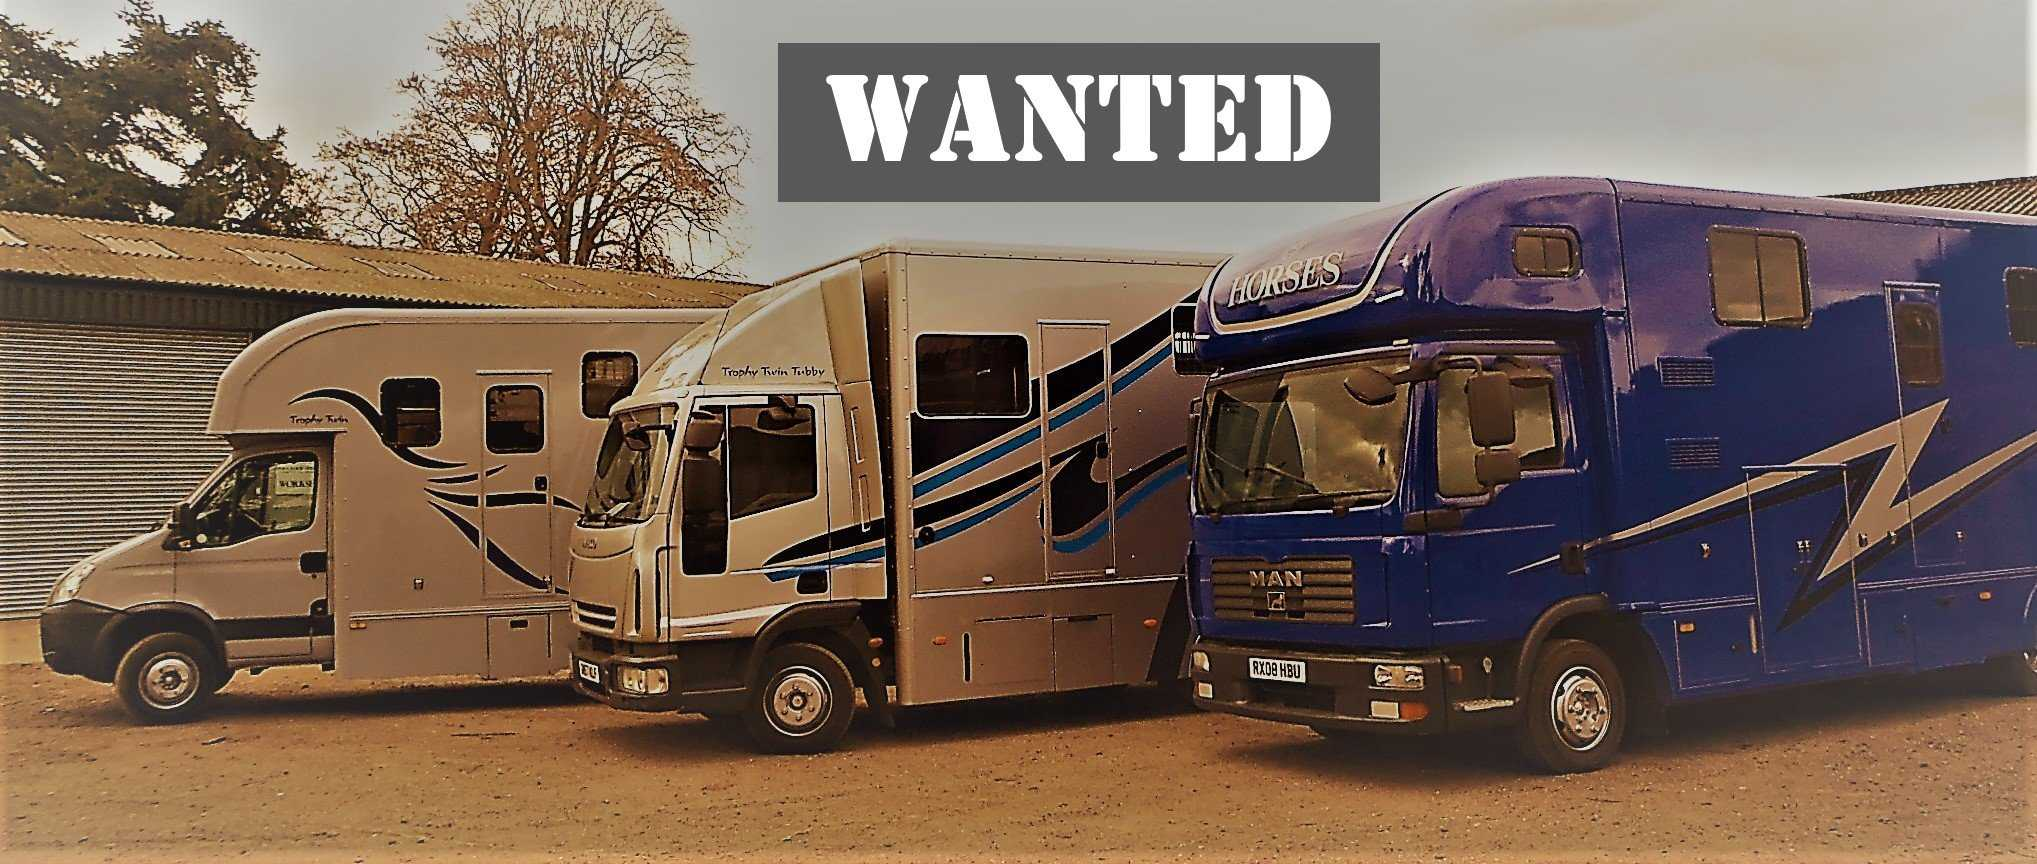 Horse Boxes Wanted